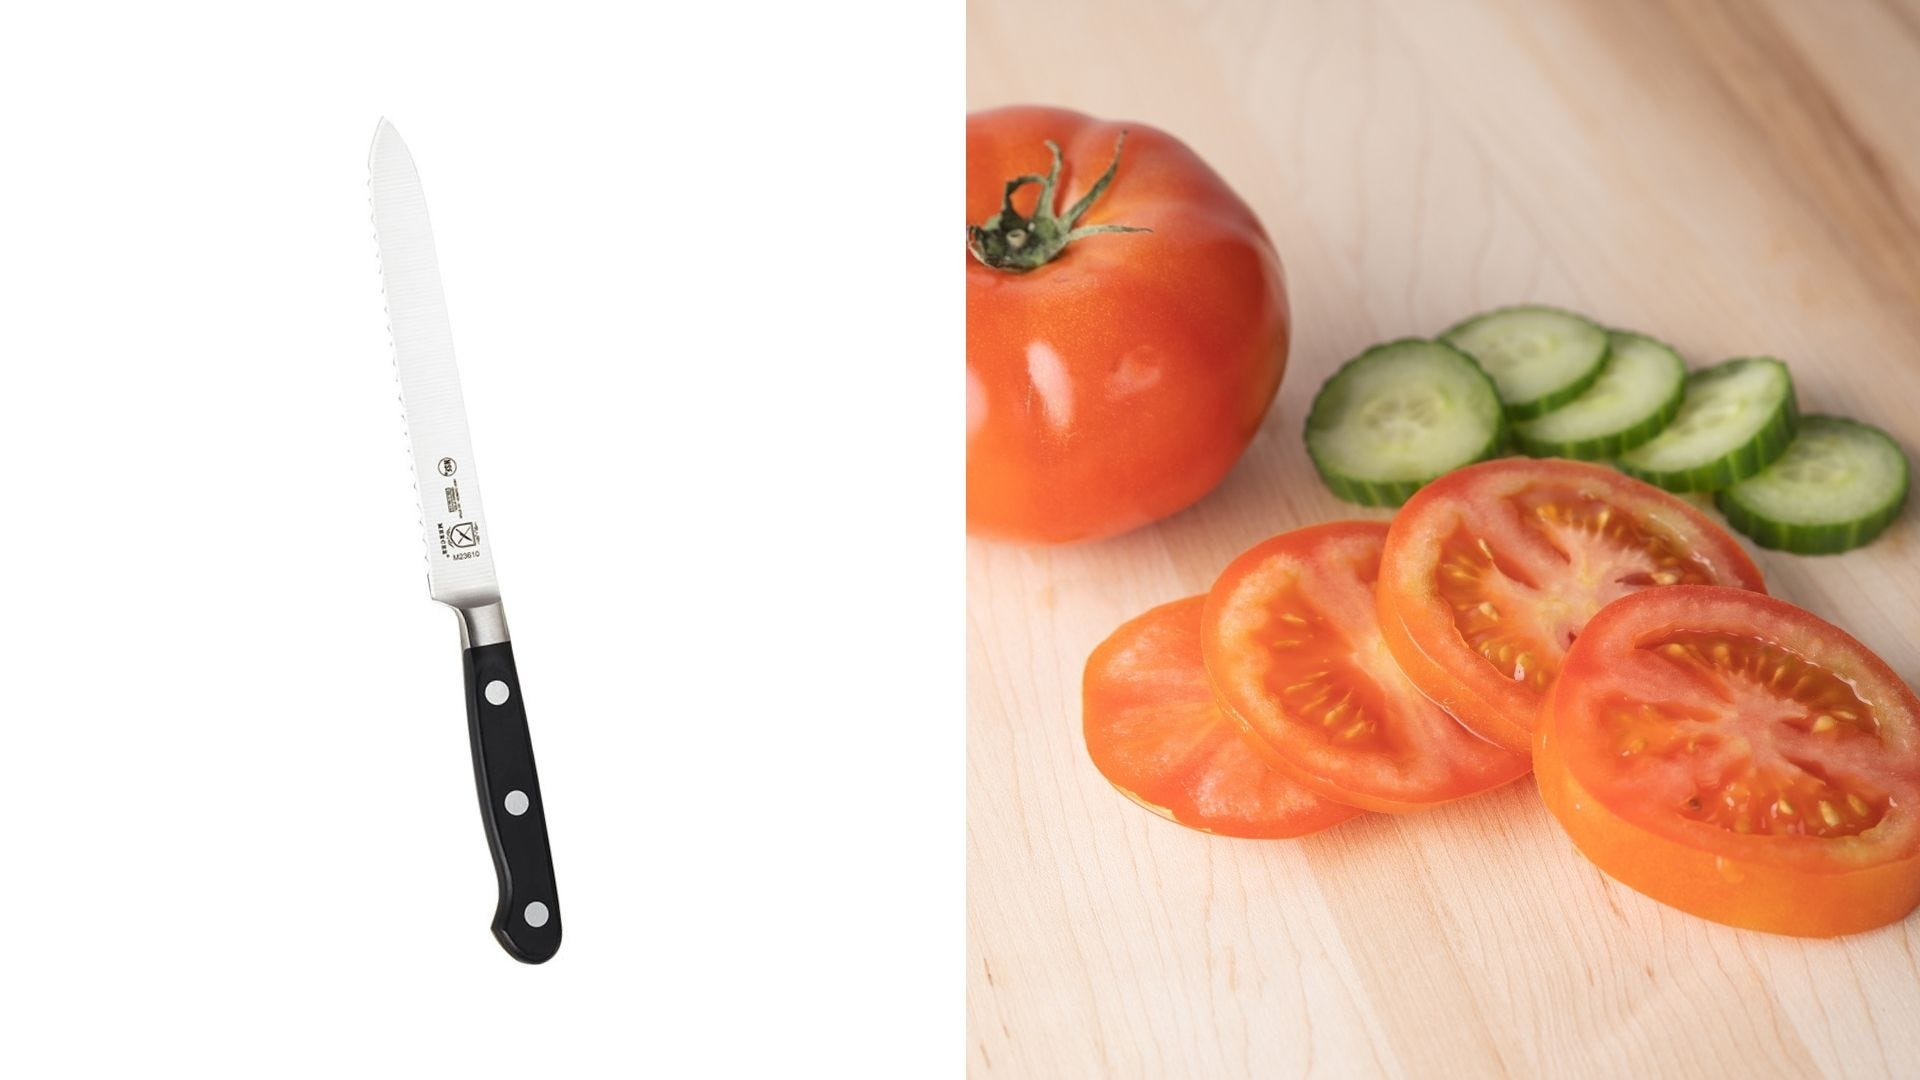 A tomato knife and sliced tomatoes.